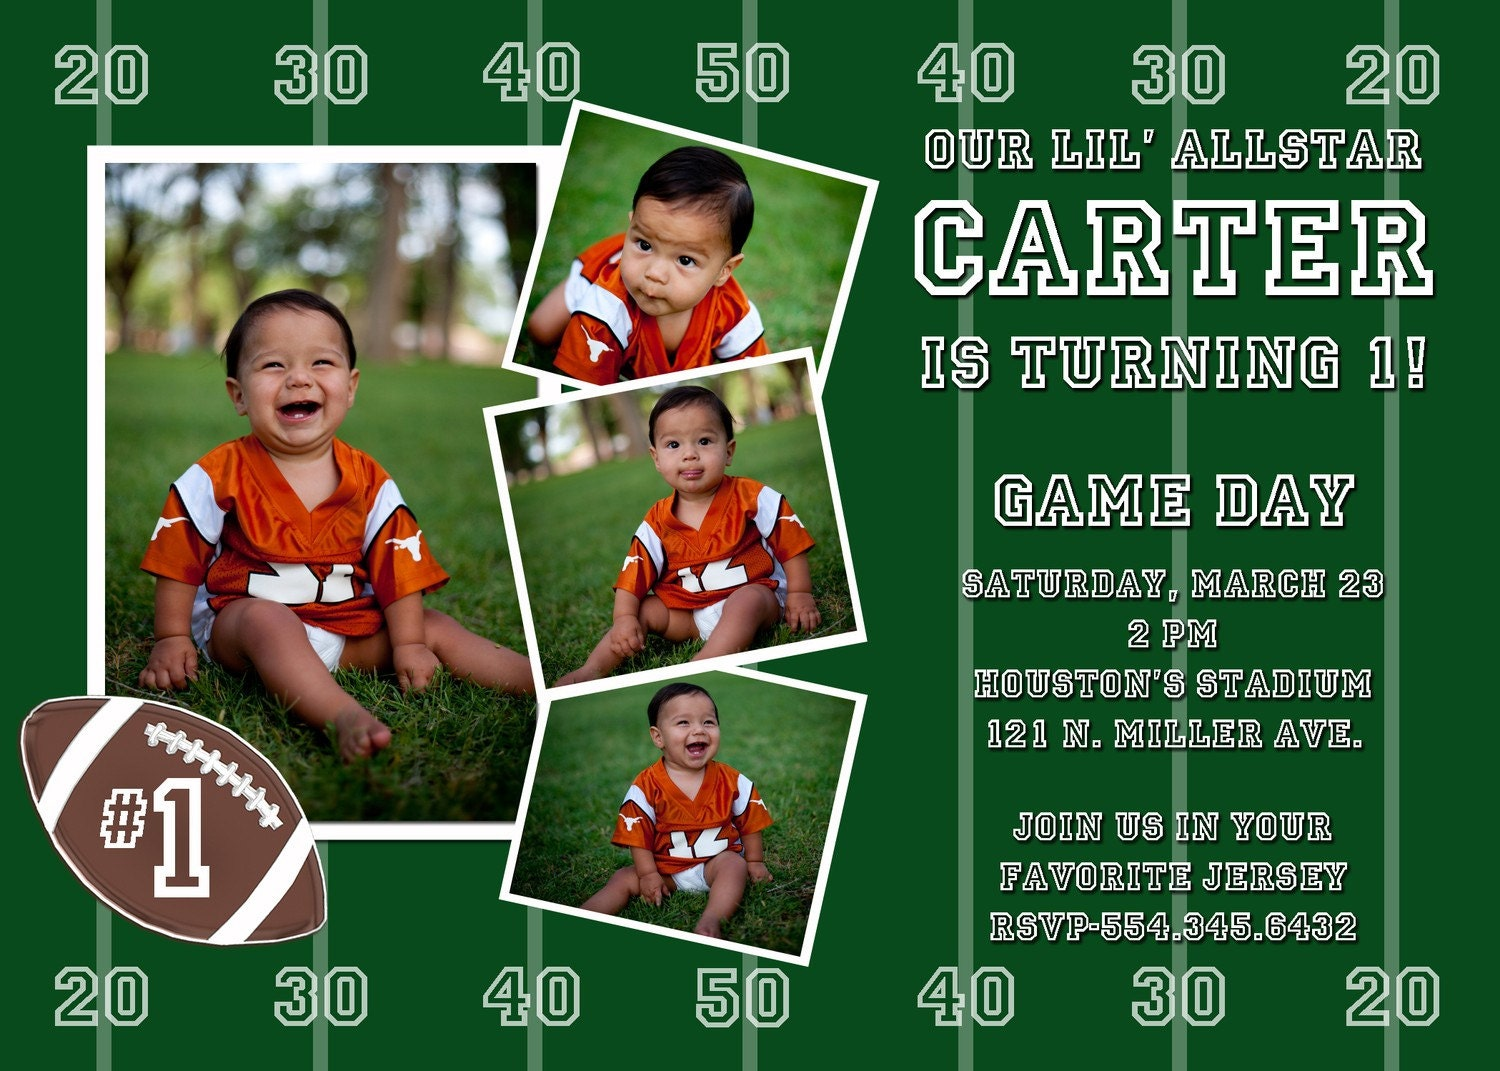 Football Birthday Party Invitations is one of our best ideas you might choose for invitation design